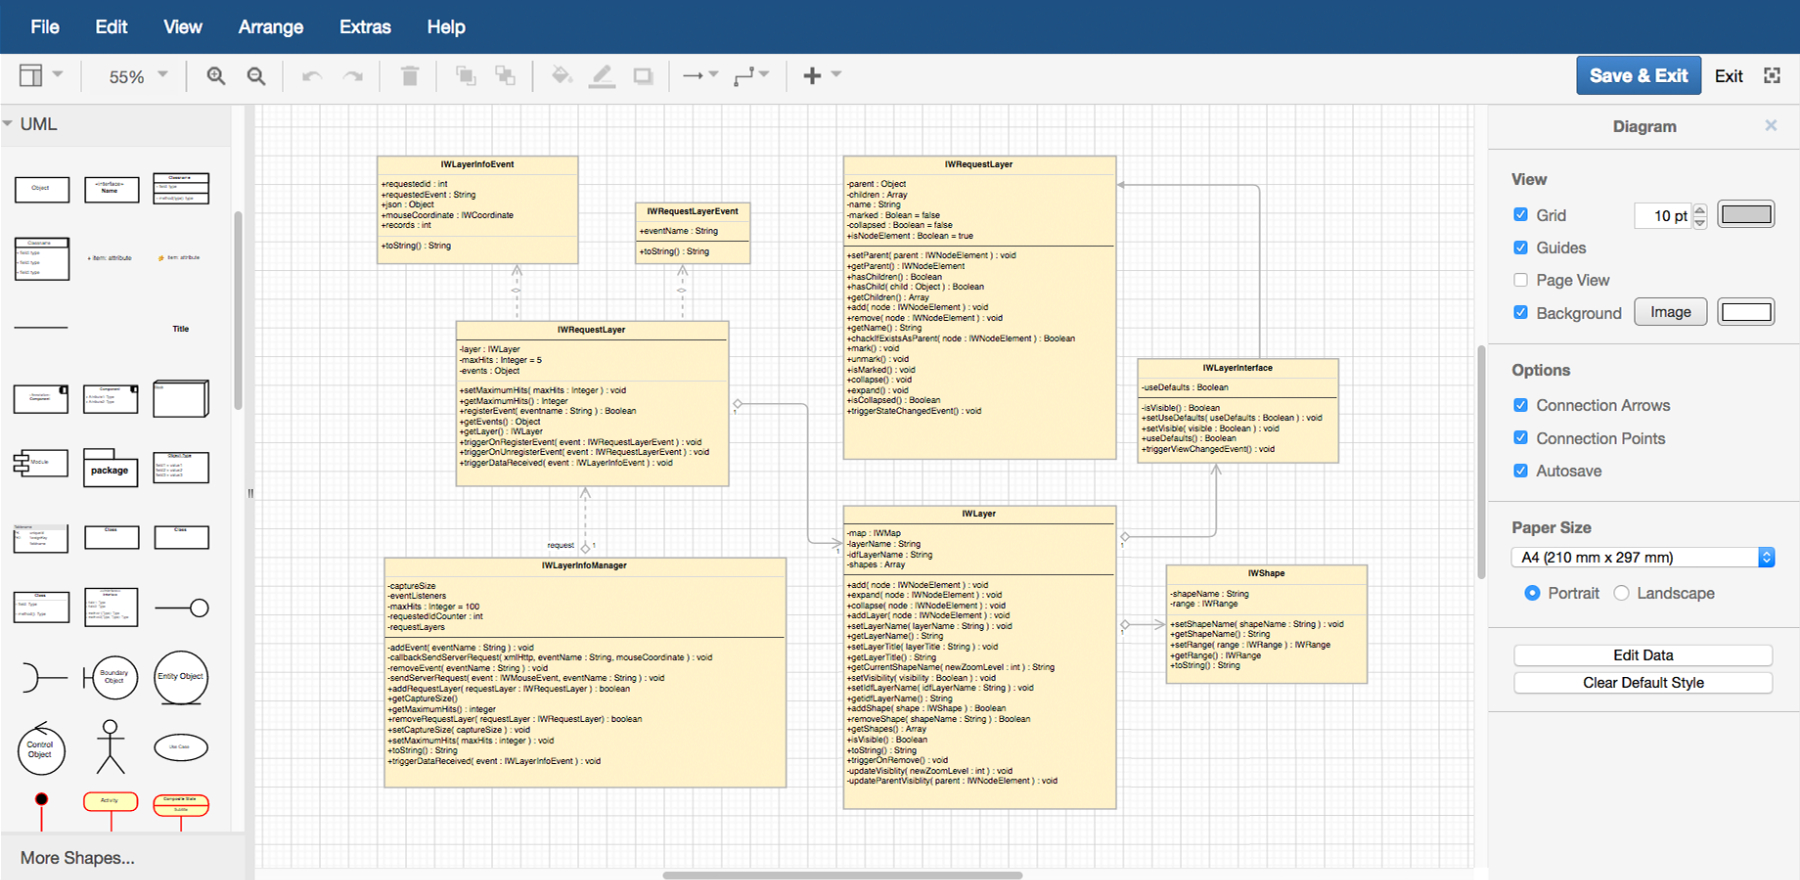 Features – Draw.io intended for Er Diagram In Draw.io